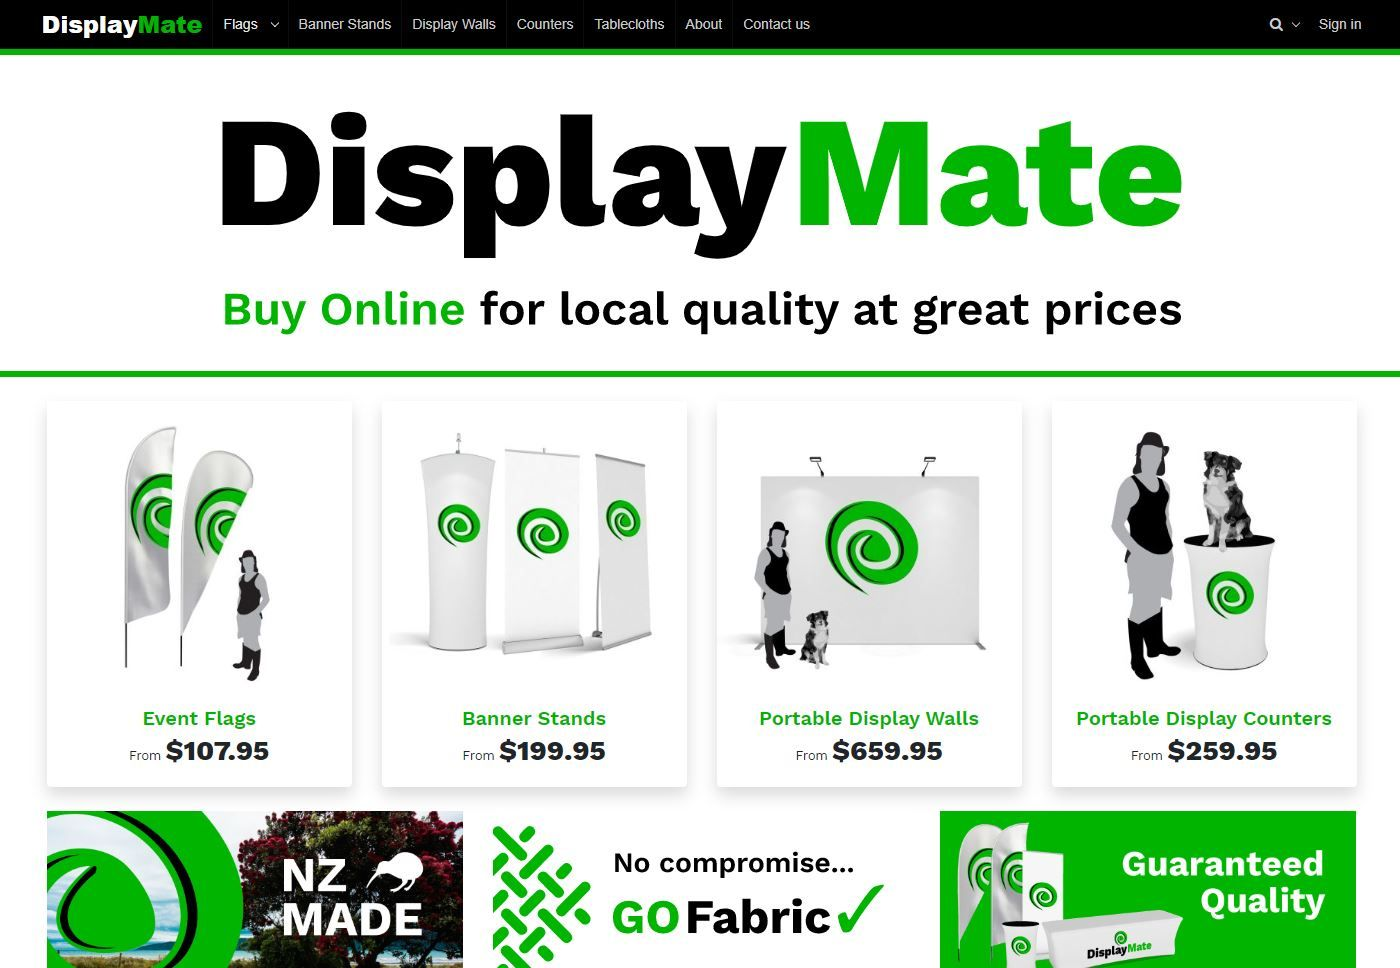 DisplayMate Website